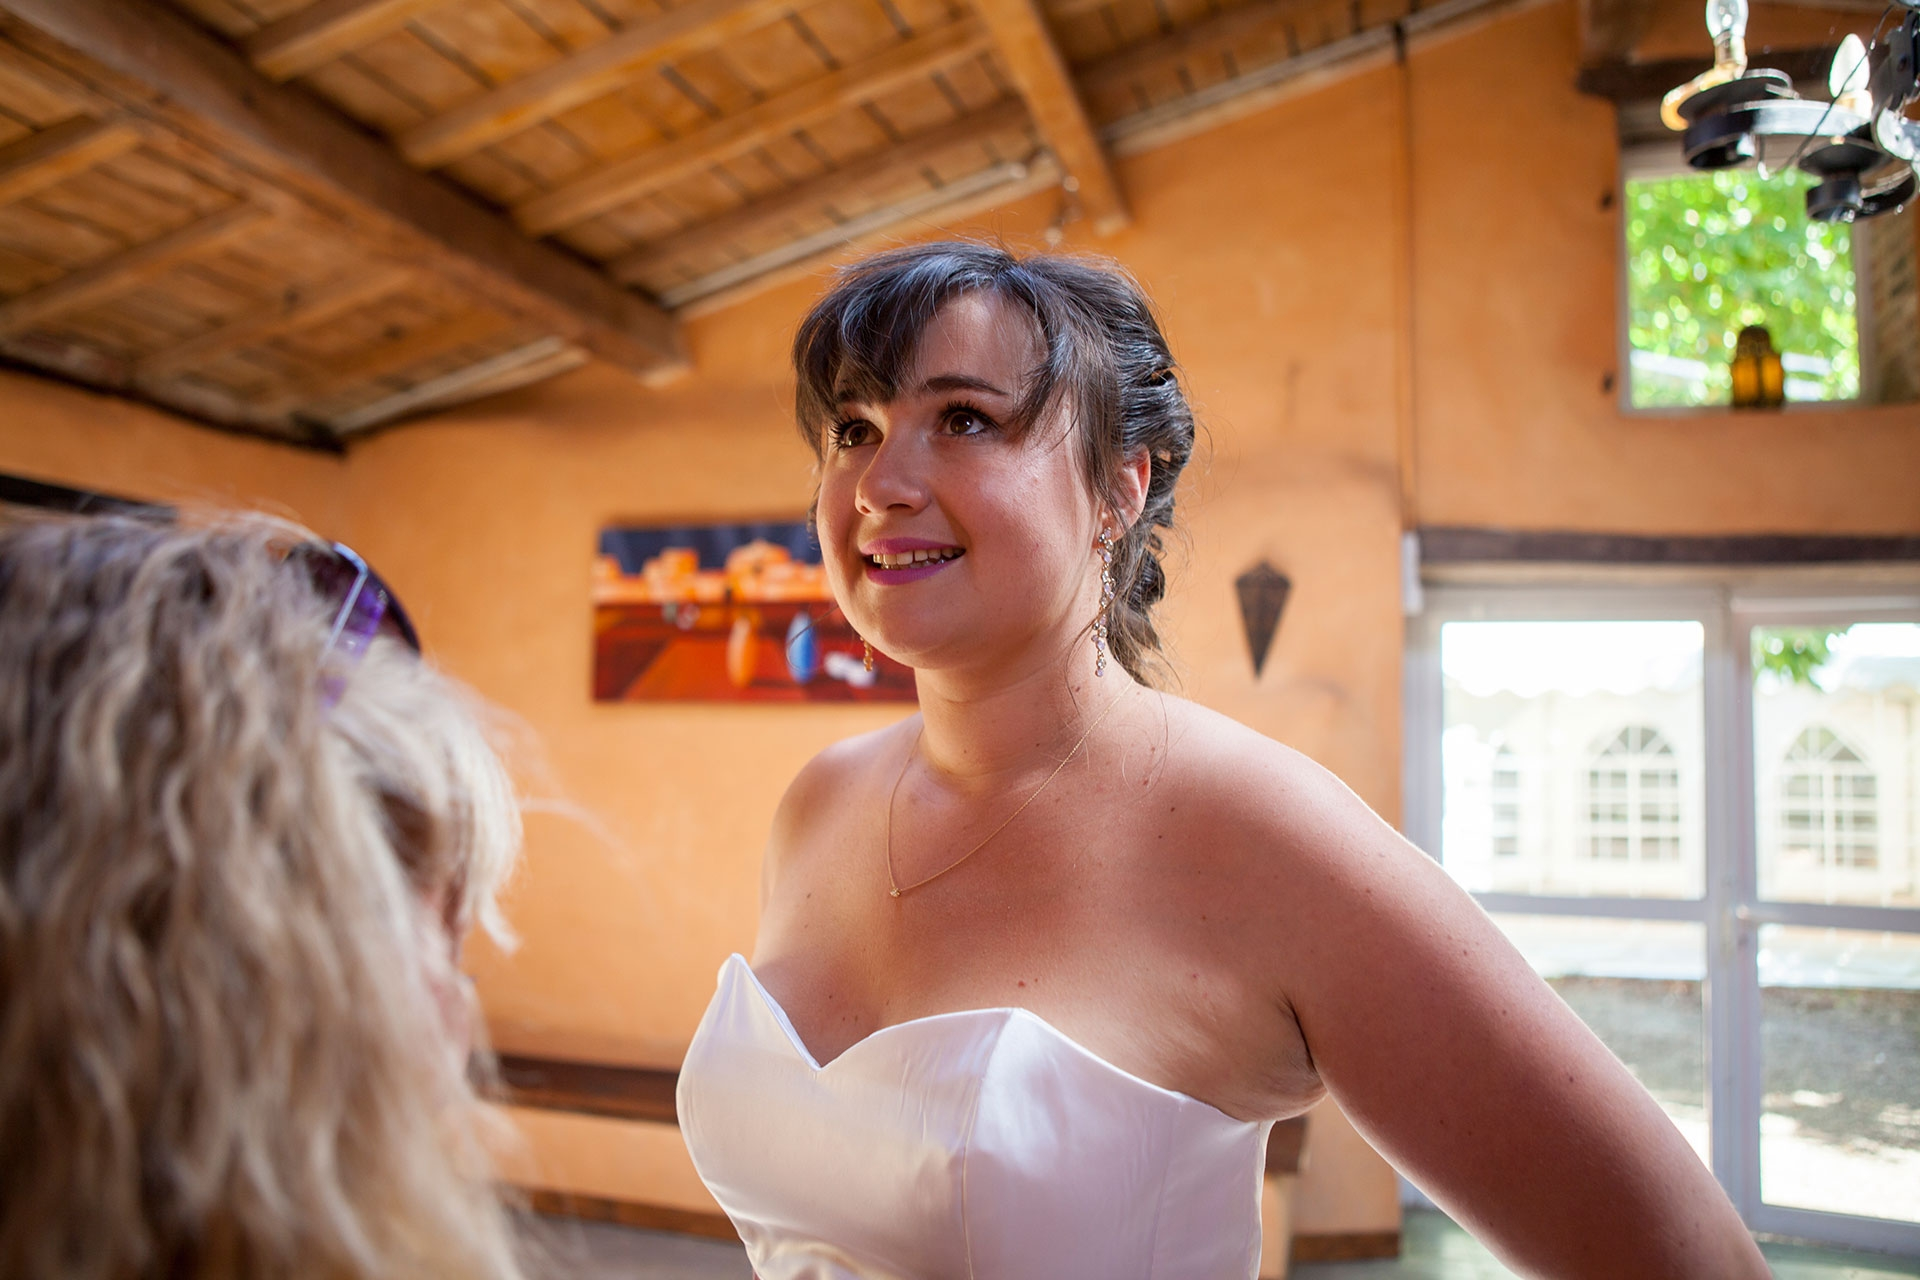 particuliers-evenements-mariages-oui-france&philippe-18